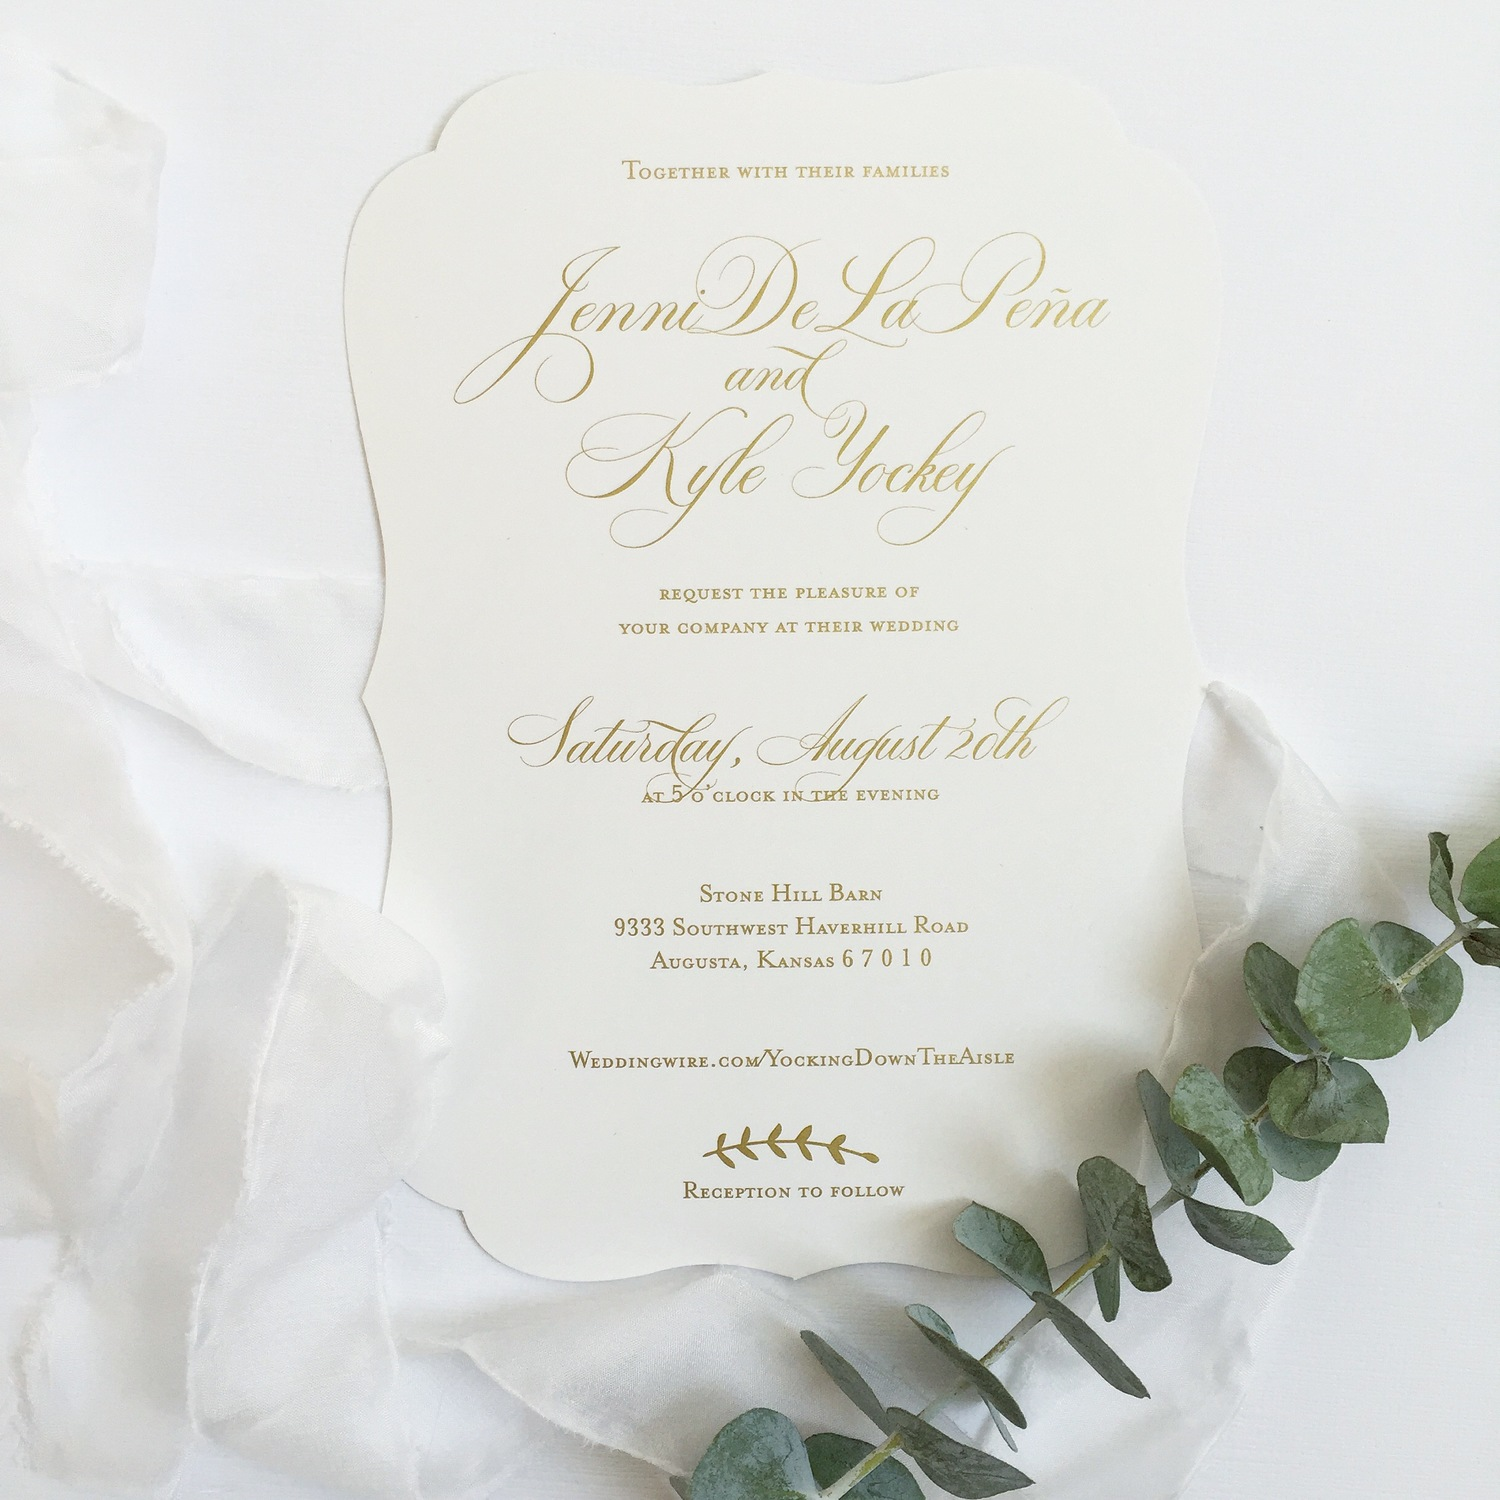 Jenni-Wedding-Invite.jpg